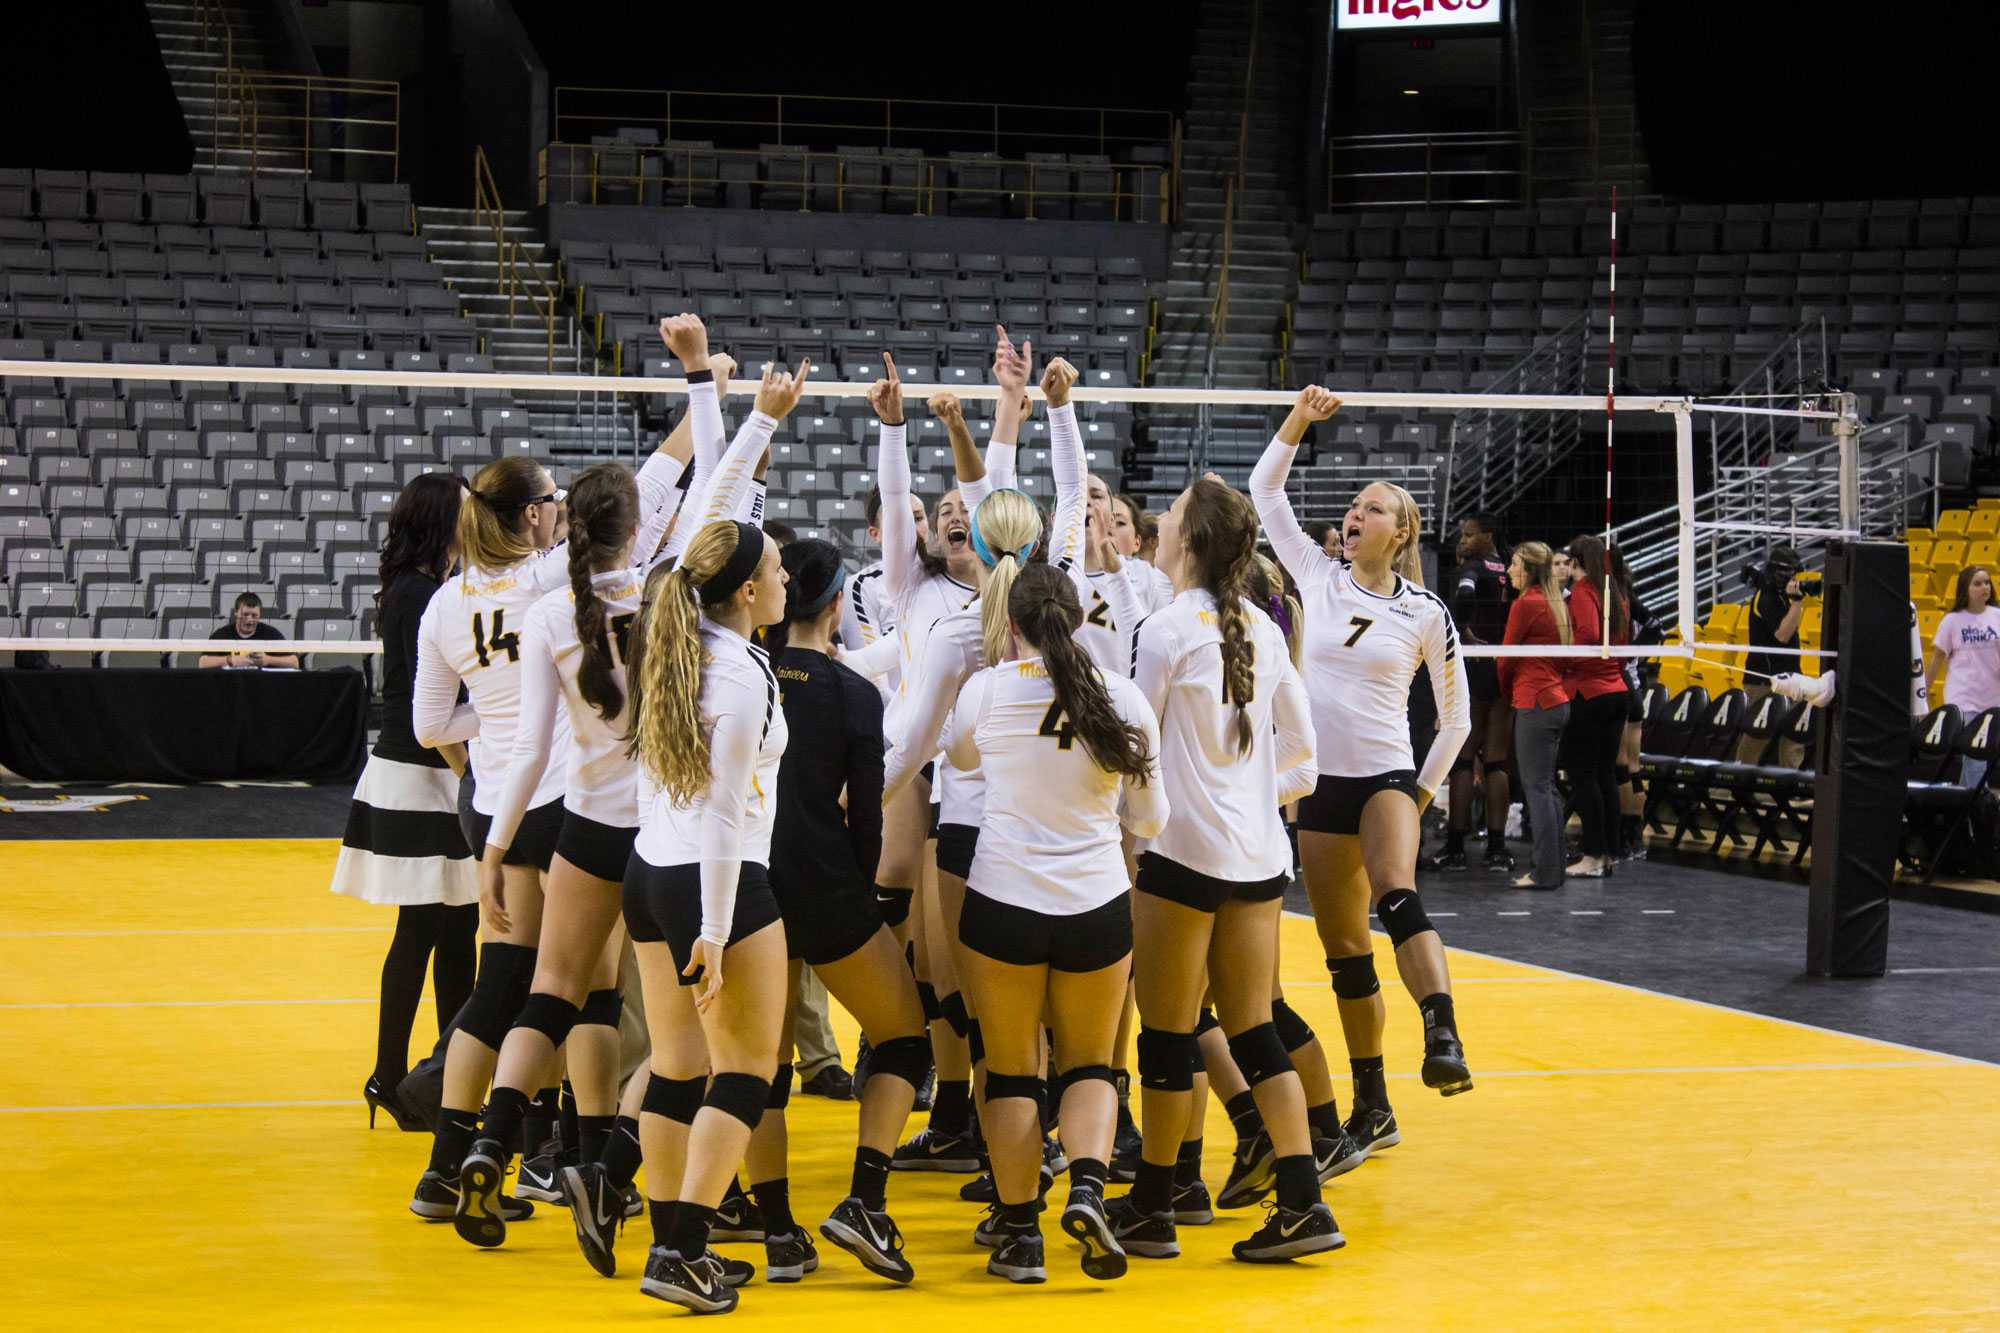 Nearly perfect Mountaineers tallying lengthy win streak